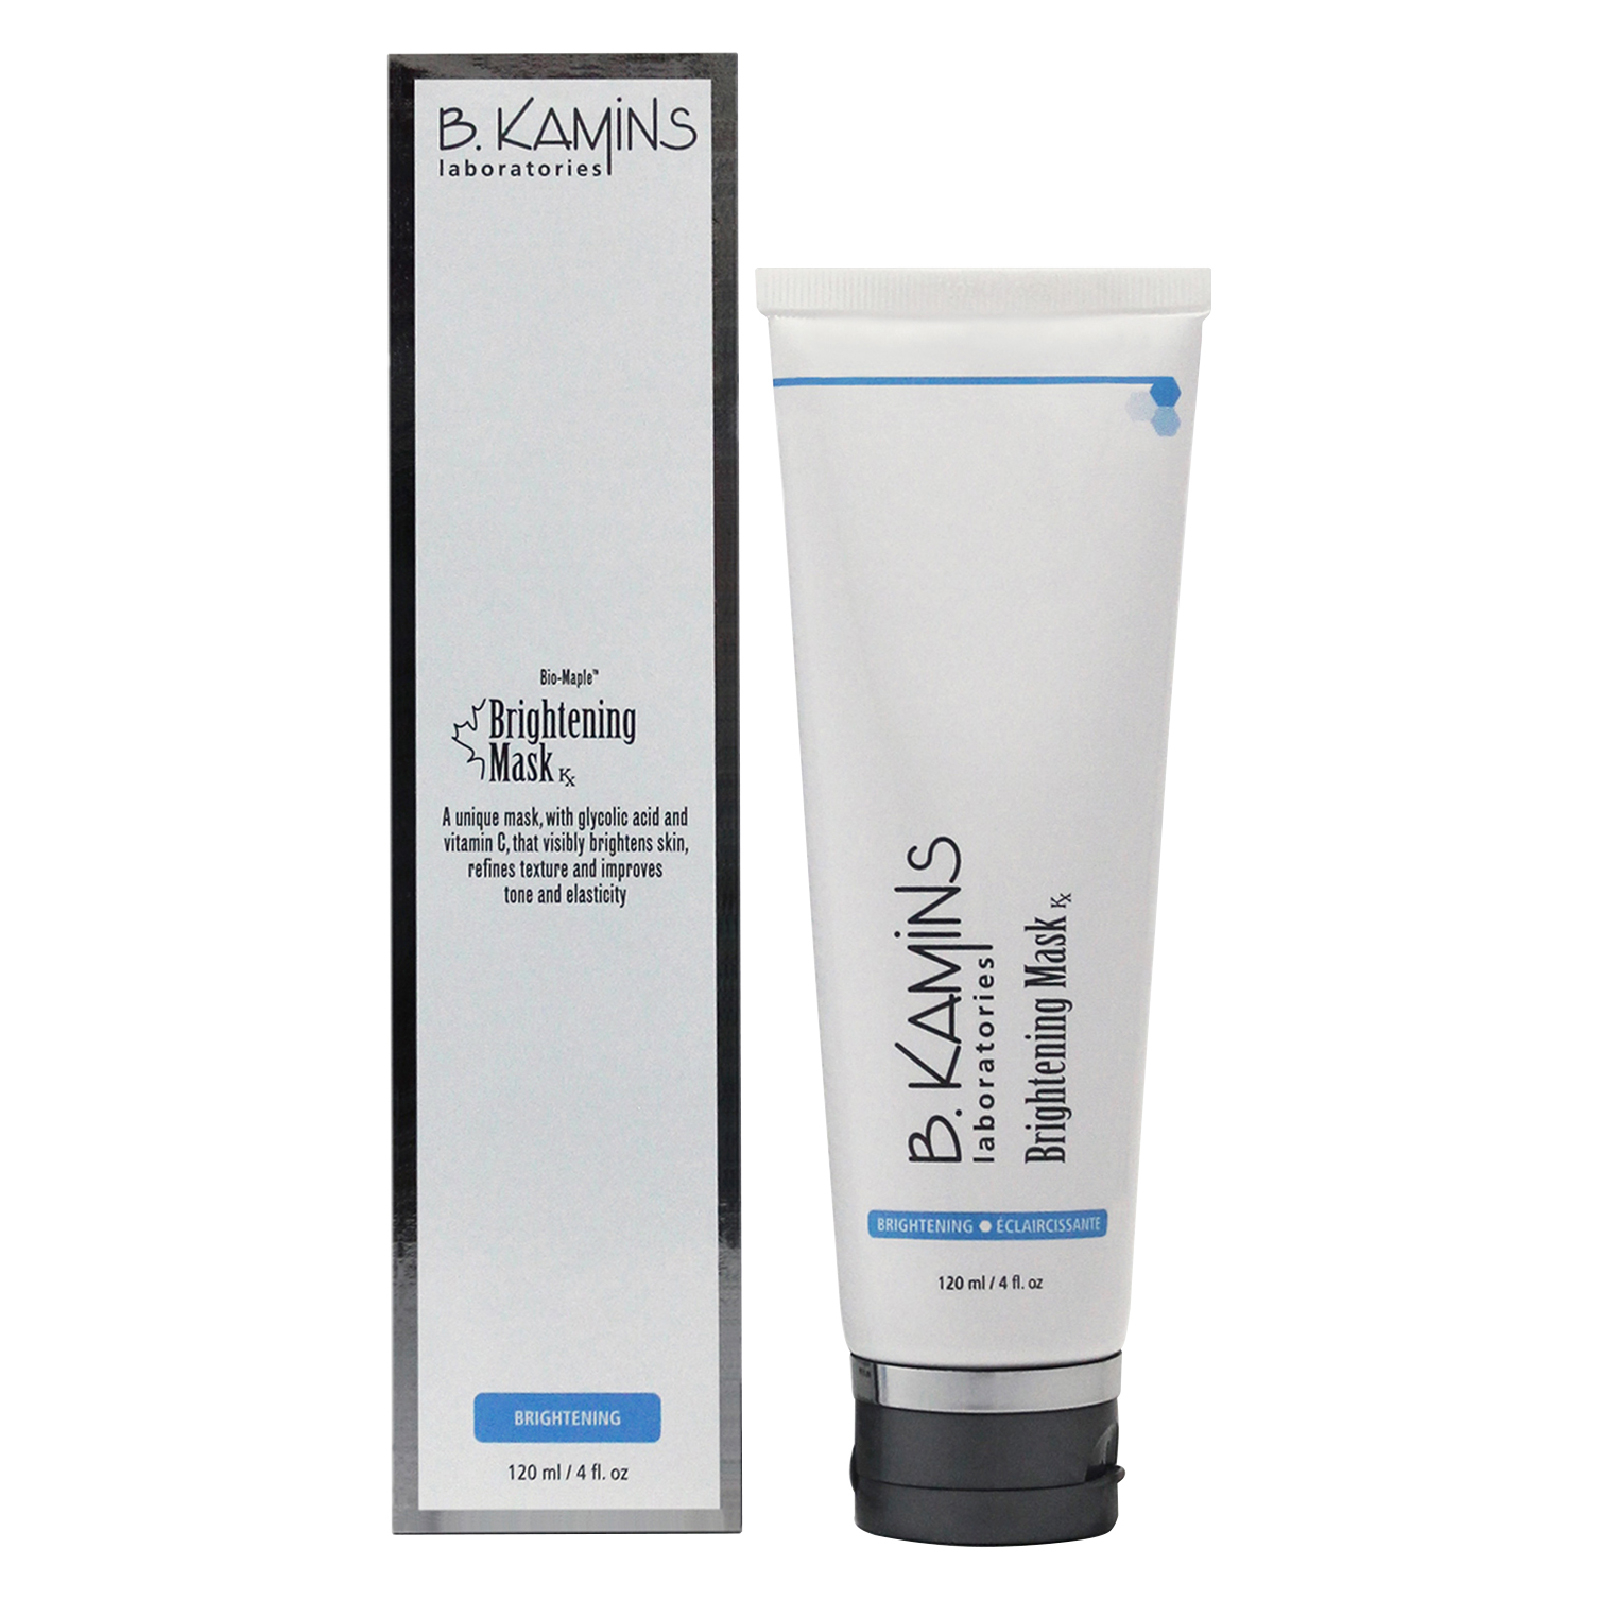 B. Kamins Brightening Masque Kx